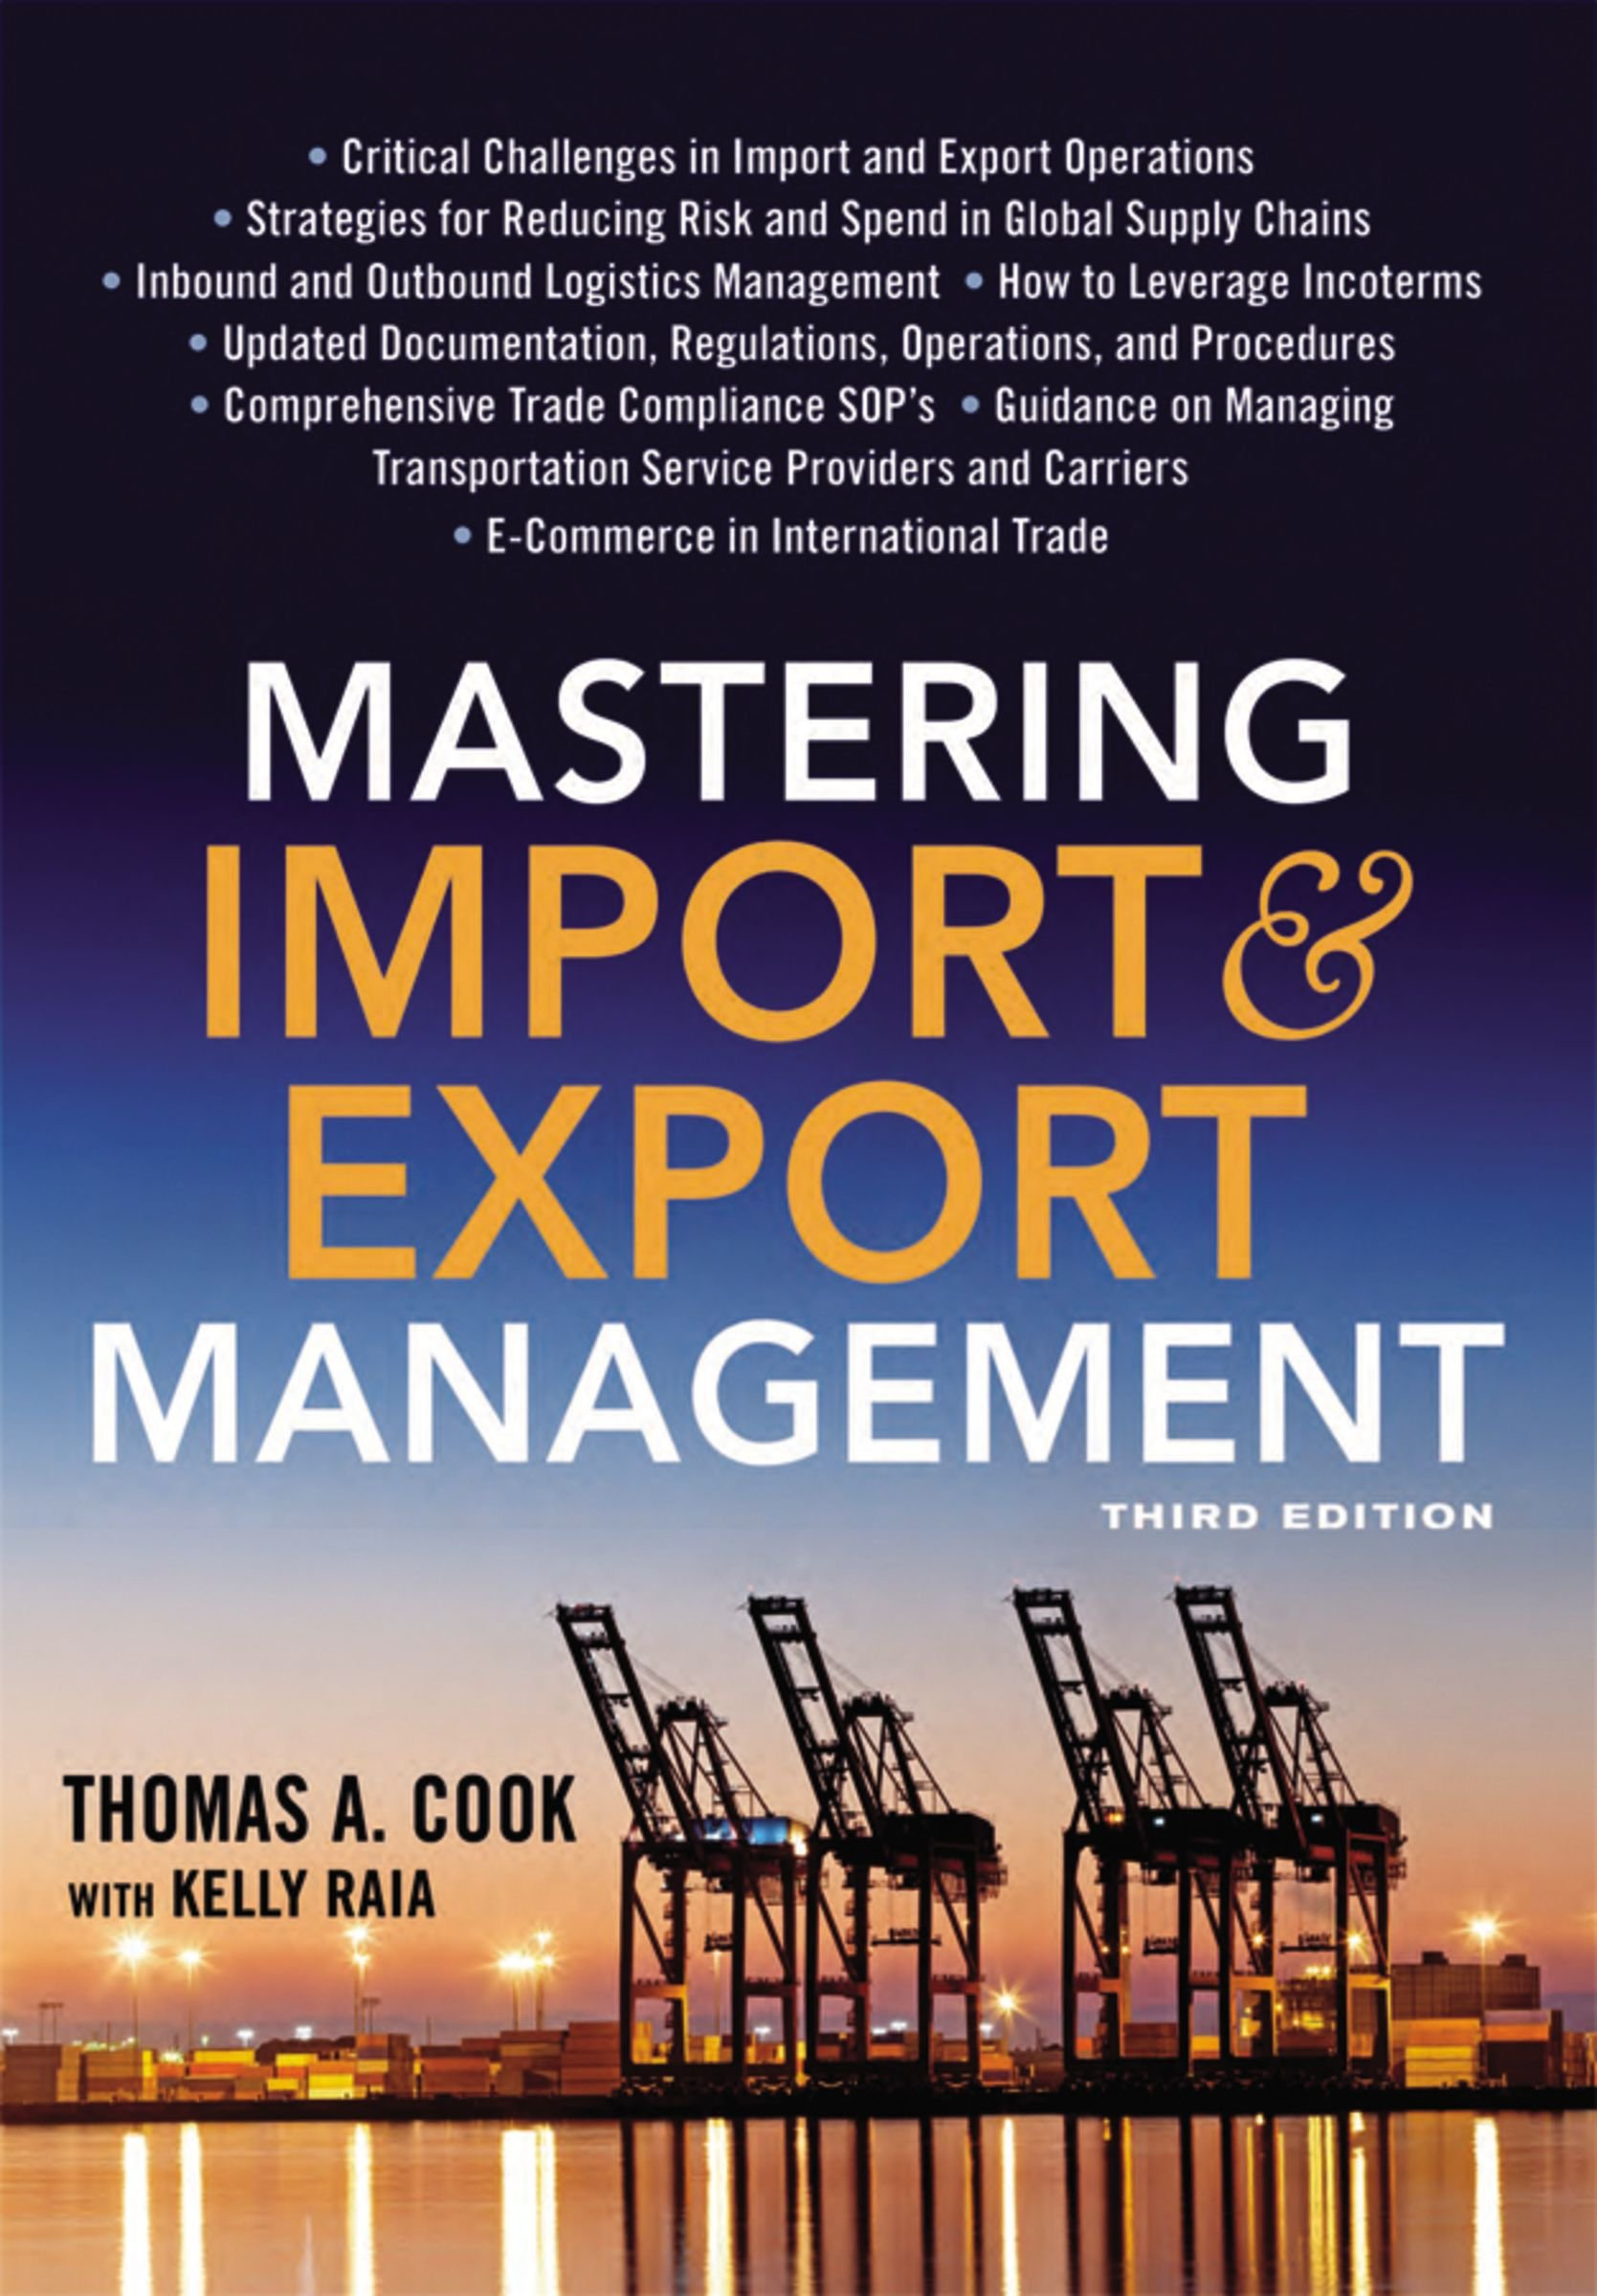 Mastering Import and Export Management: Thomas Cook, Kelly Raia